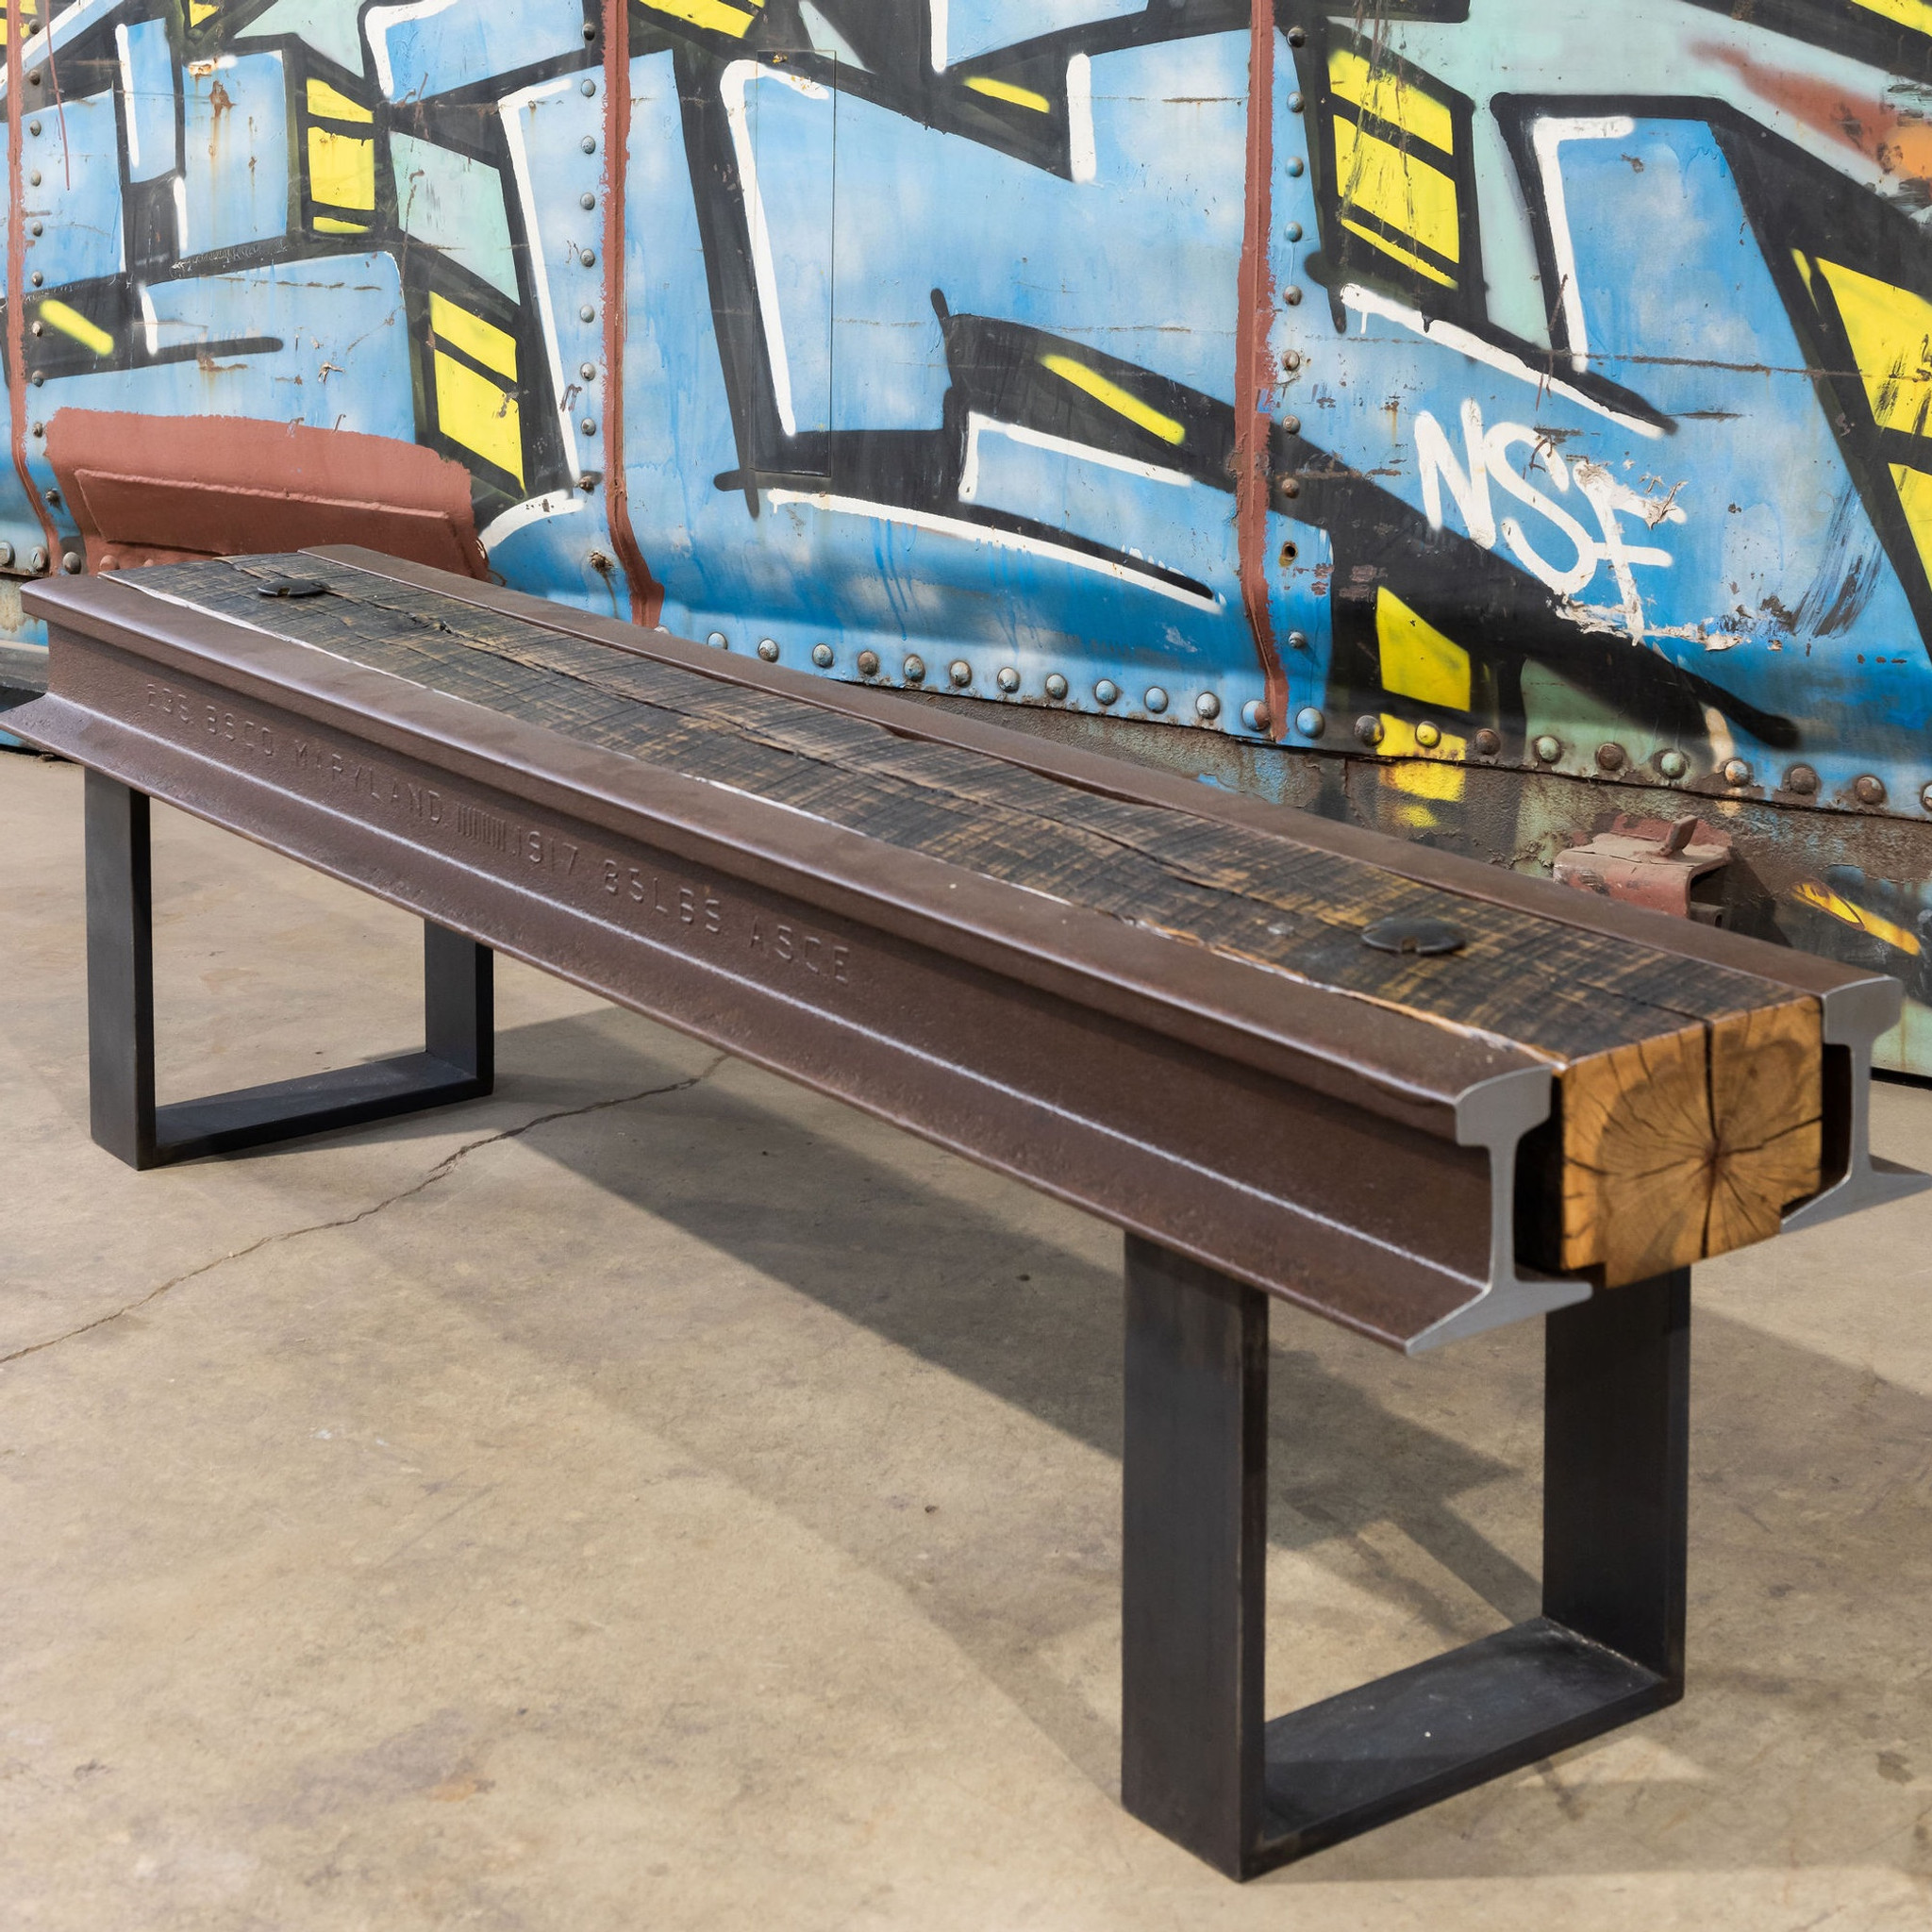 Elevated Bench with Maryland Rail